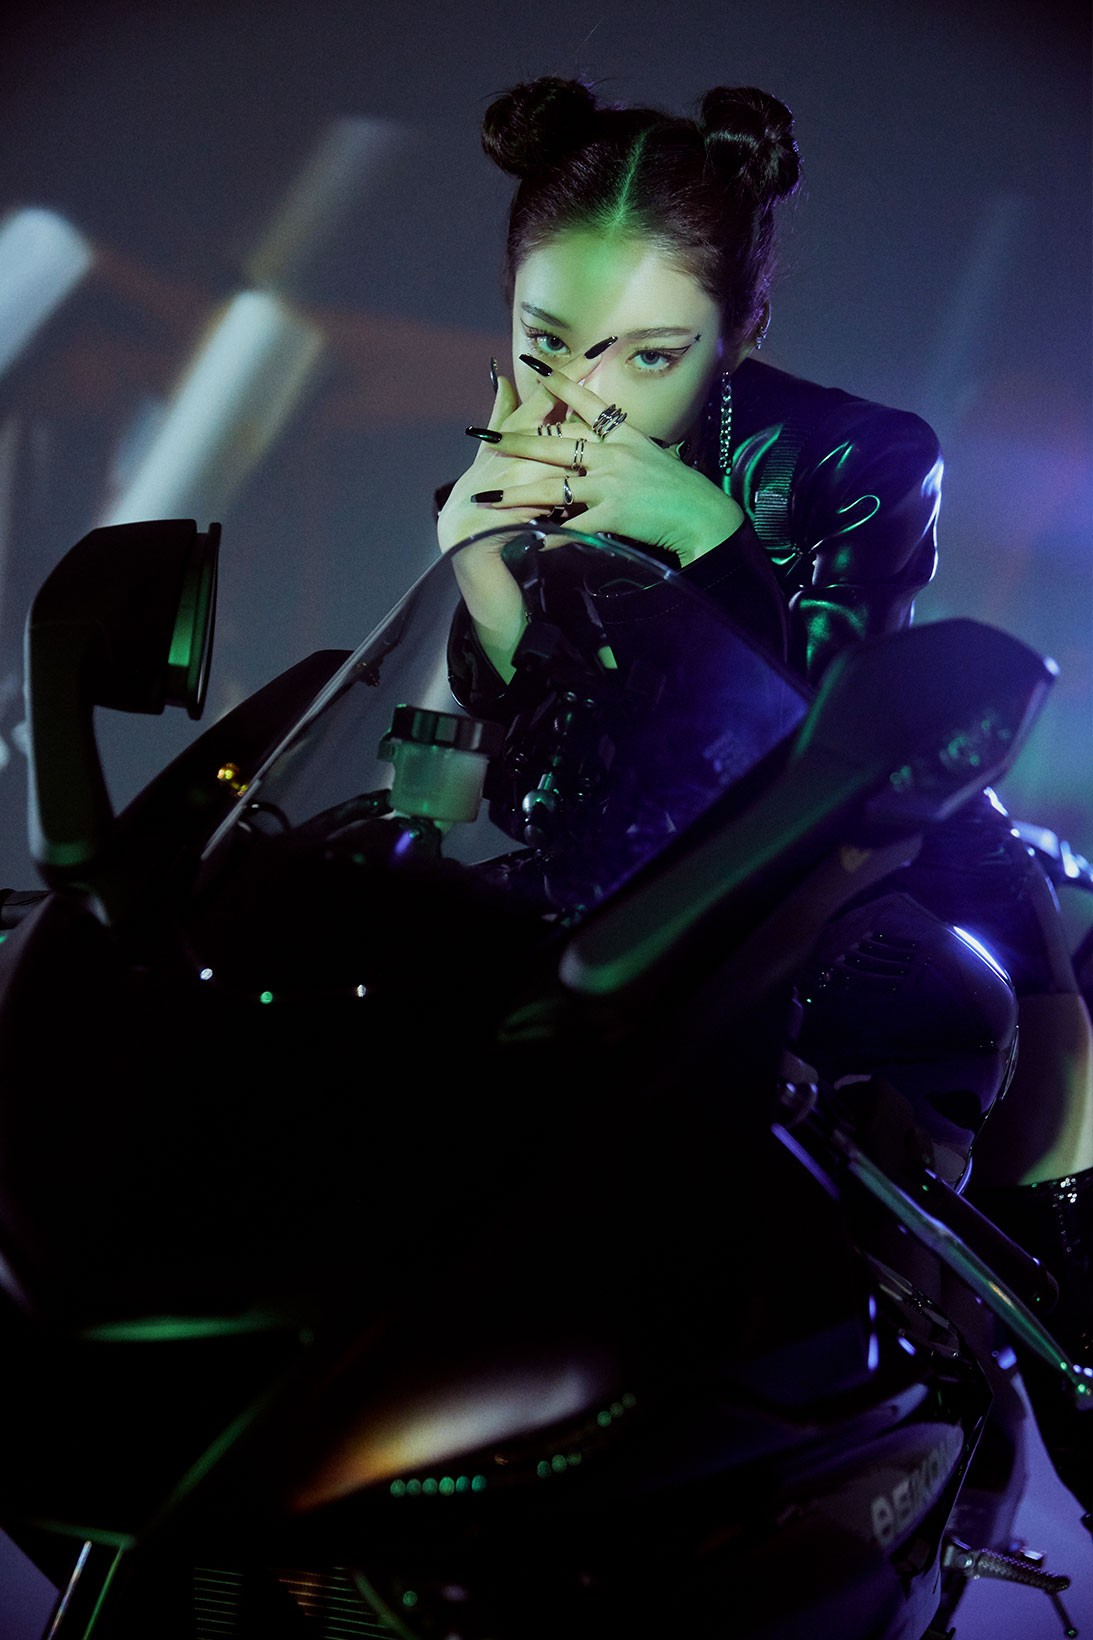 chung ha querencia album bicycle title track music video choreography k-pop release interview